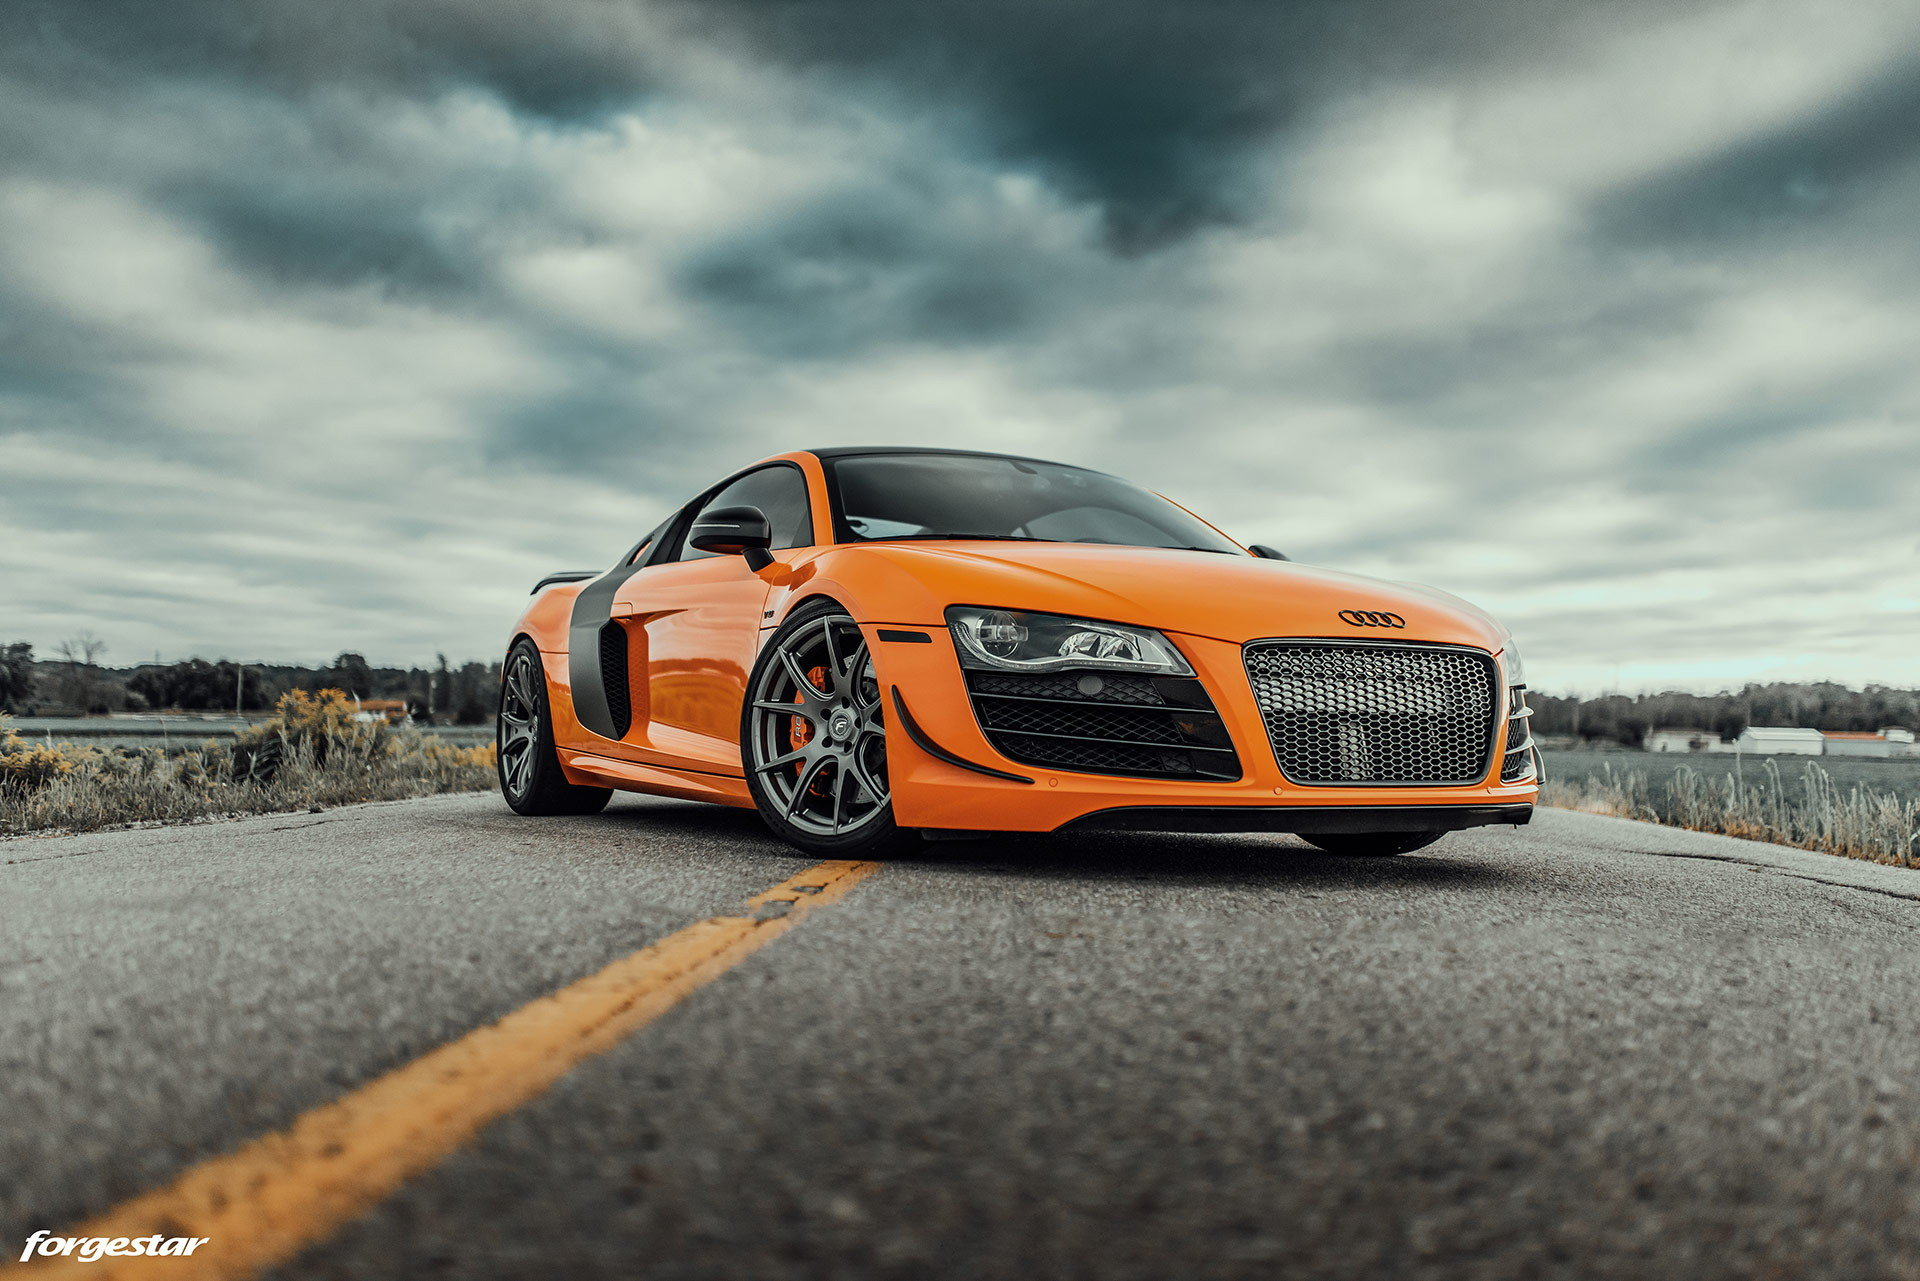 raucous-audi-r8-with-stick-shift-n-a-v10-is-what-supercar-dreams-are-made-of-172362_1.jpg